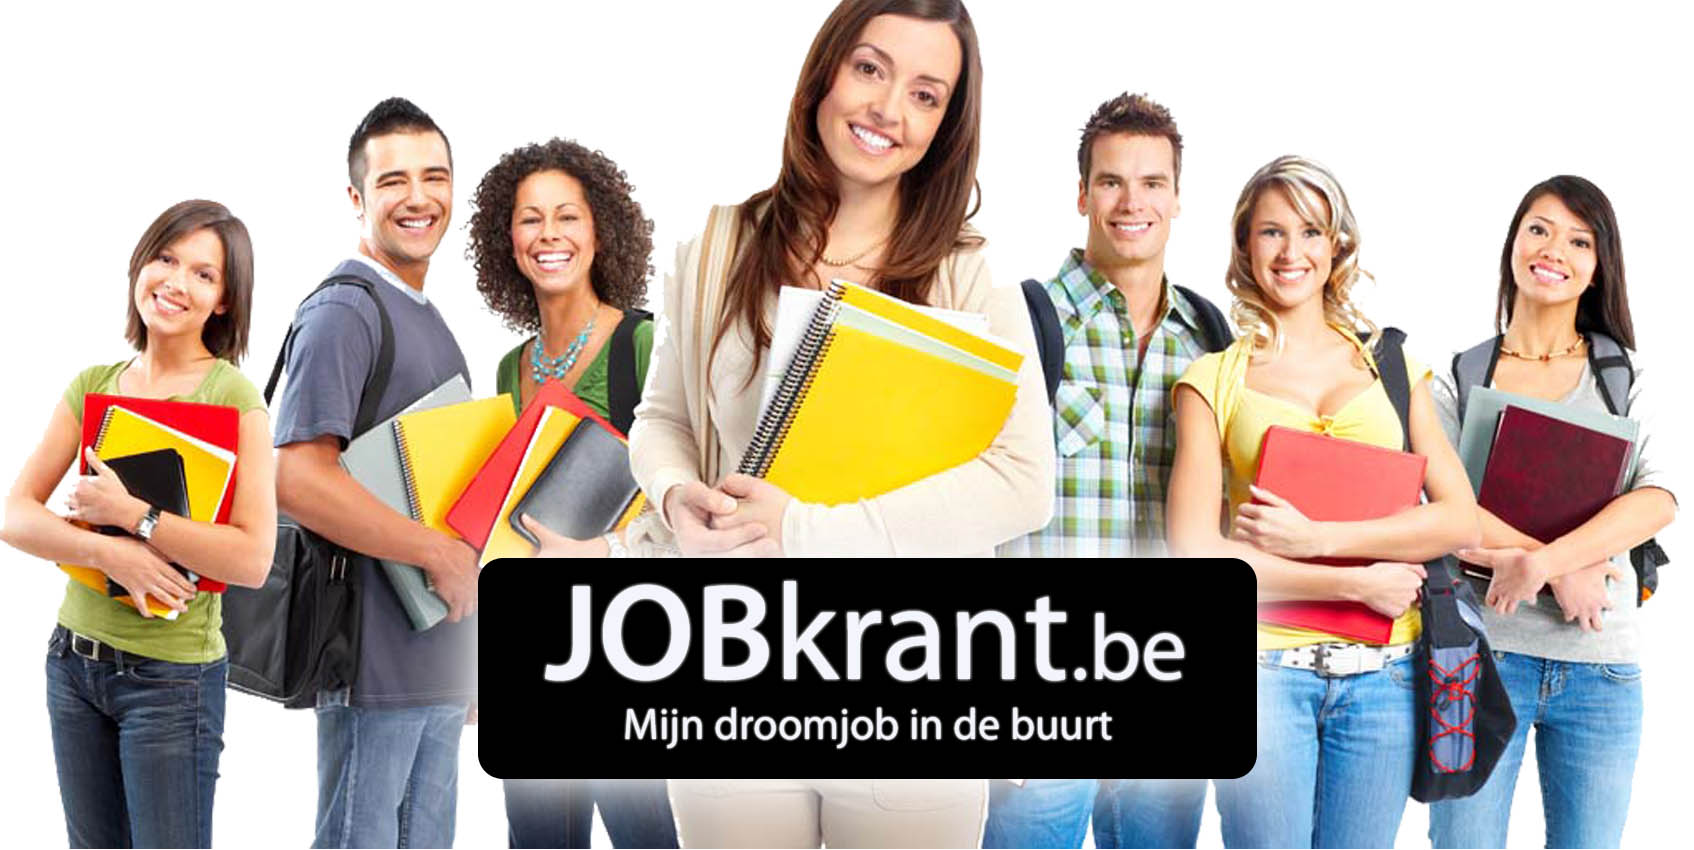 Jobkrant.be - Studentenjobs